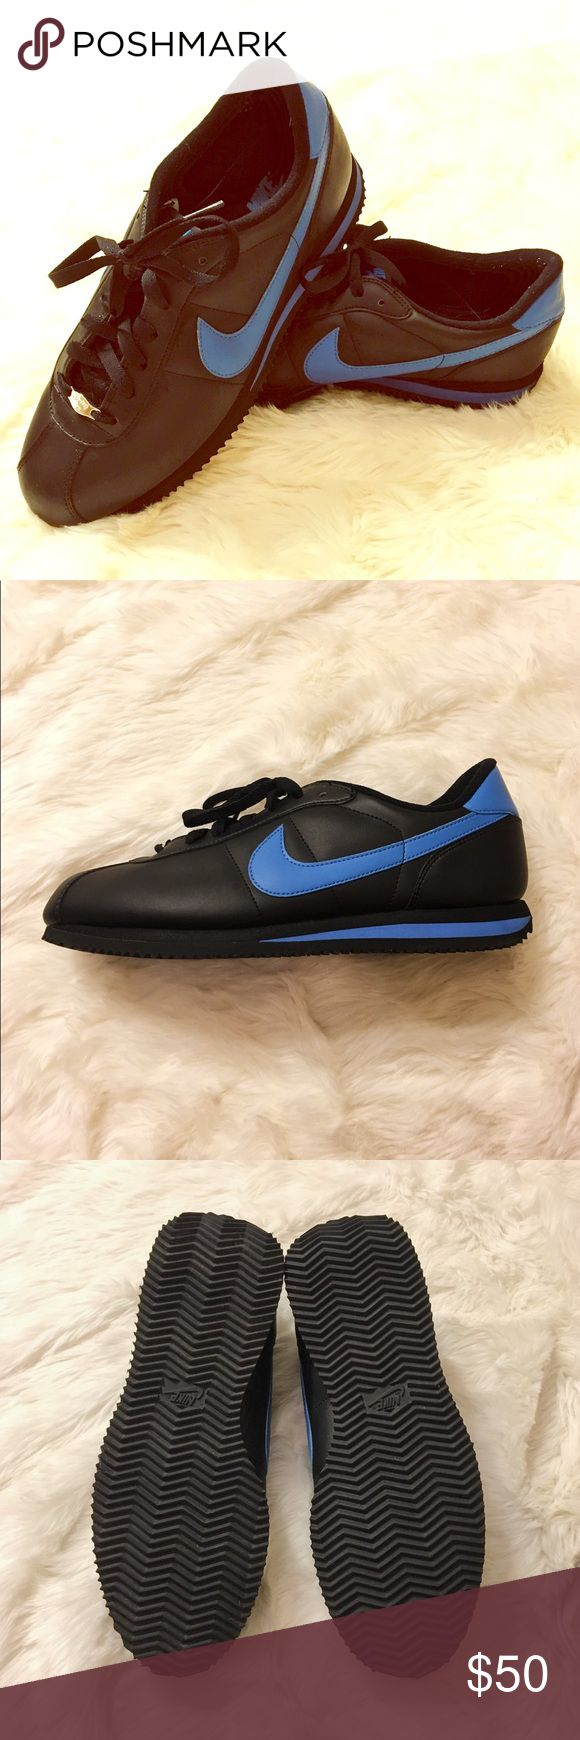 NWB Nike Cortez Leather Sneakers Nike Cortez Leather sneakers. Size 10 in Black/Photo Blue. BRAND NEW! Only worn to try on the size around carpet at home. Comes with original box. Classic sneakers good to wear all year round!  $65 MSRP Nike Shoes Sneakers